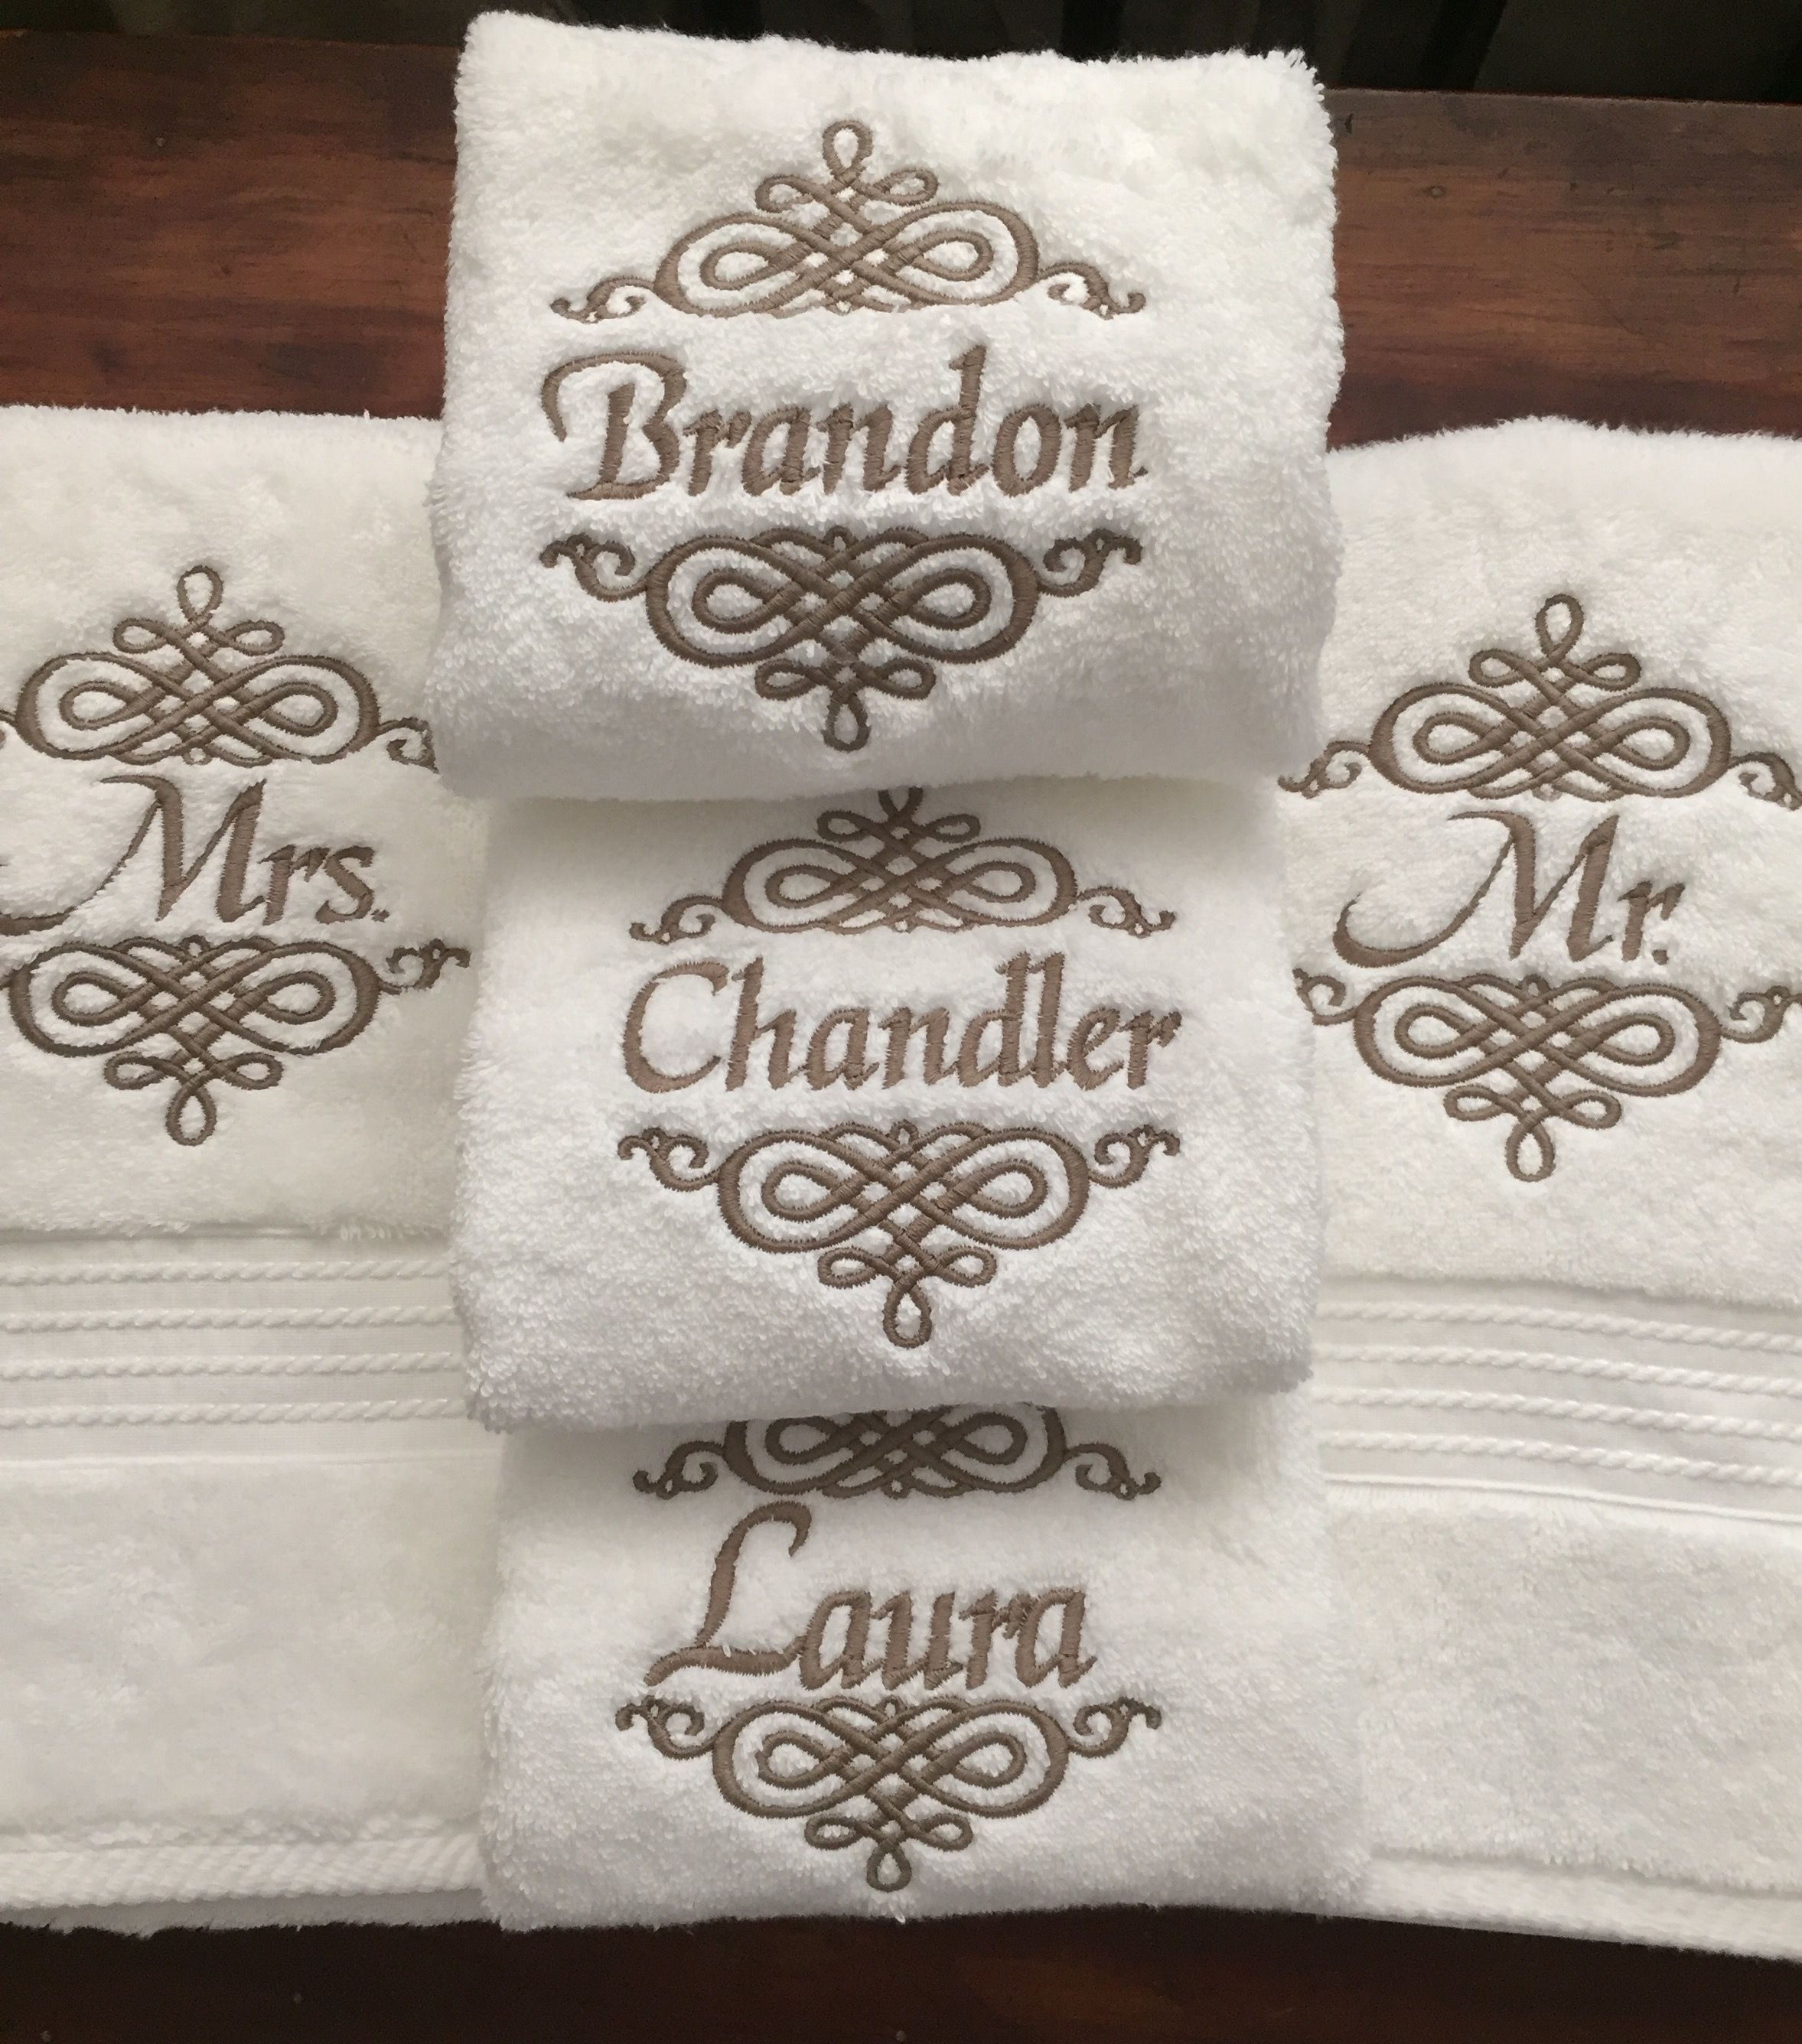 Set of mr and mrs monogrammed towels creative